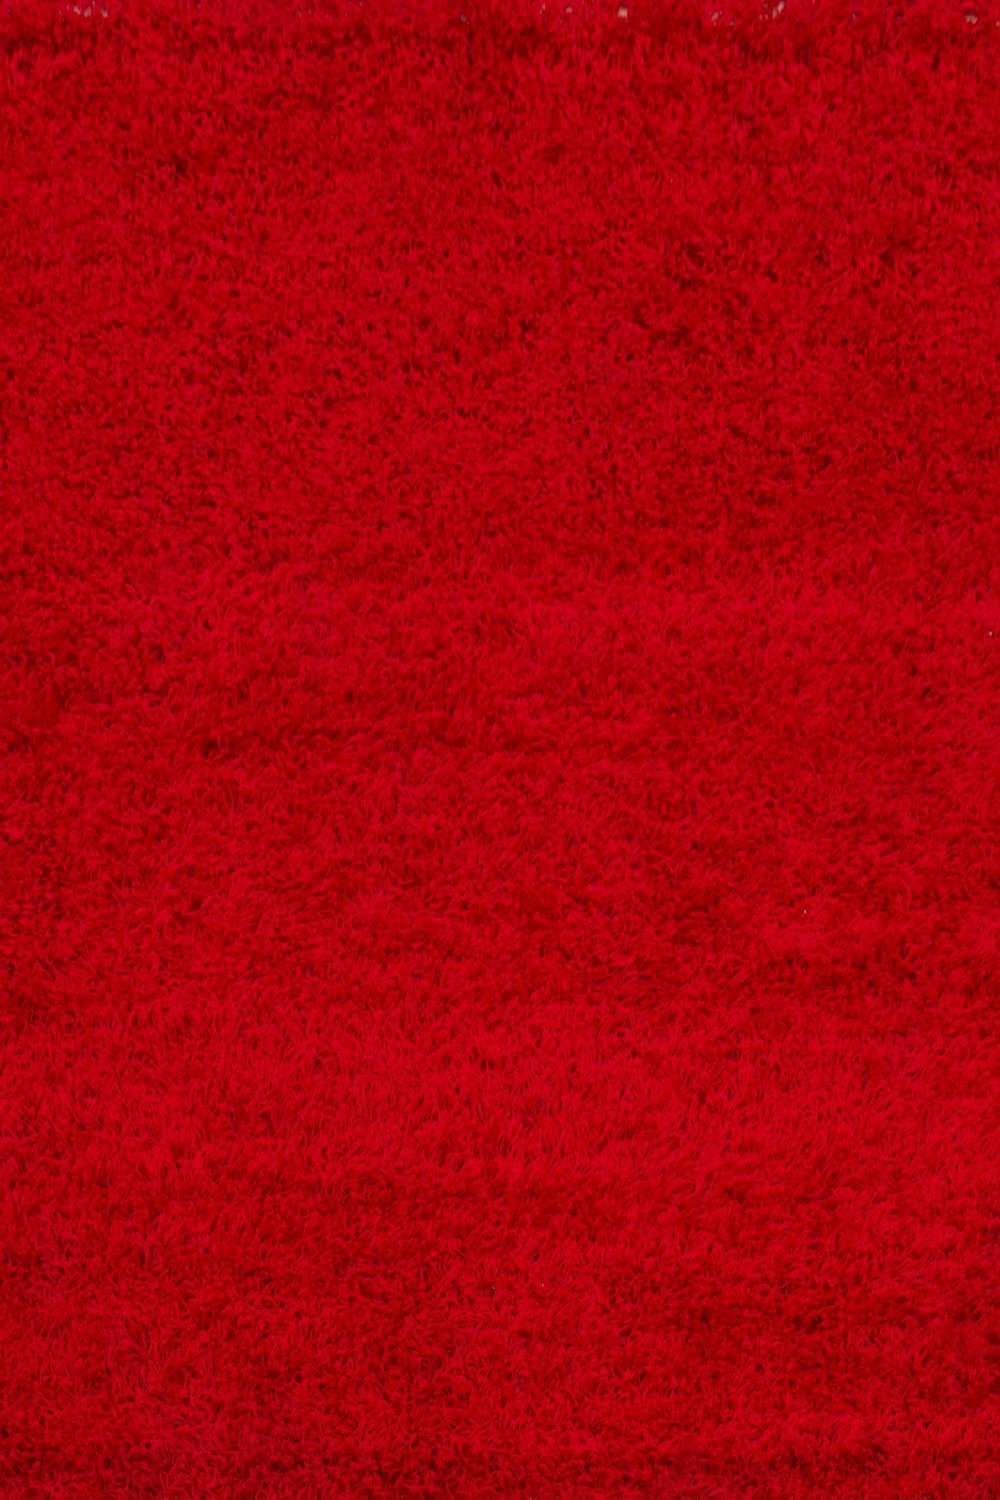 Contemporary rugs handwoven red 7 sizes availlable 2 x 4 Feet Sona-Lux